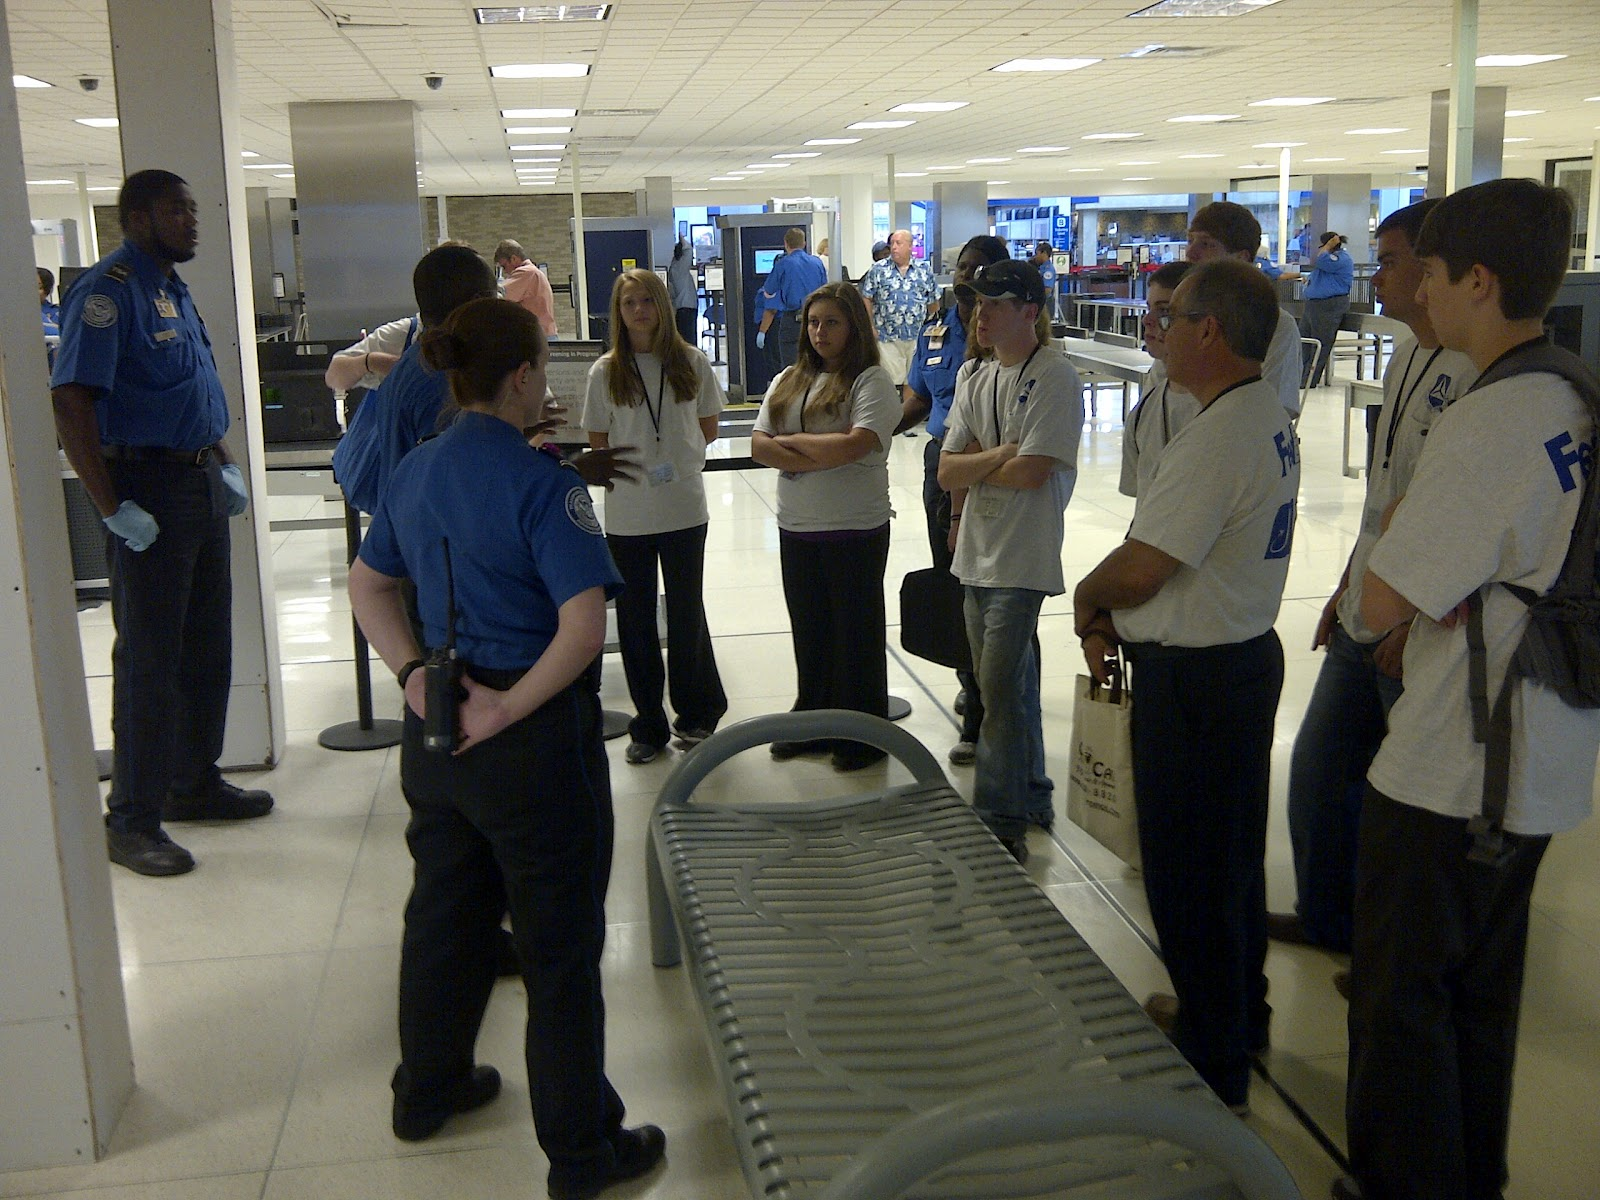 tsa instructs cap cadets on screening procedures and various tsa career paths